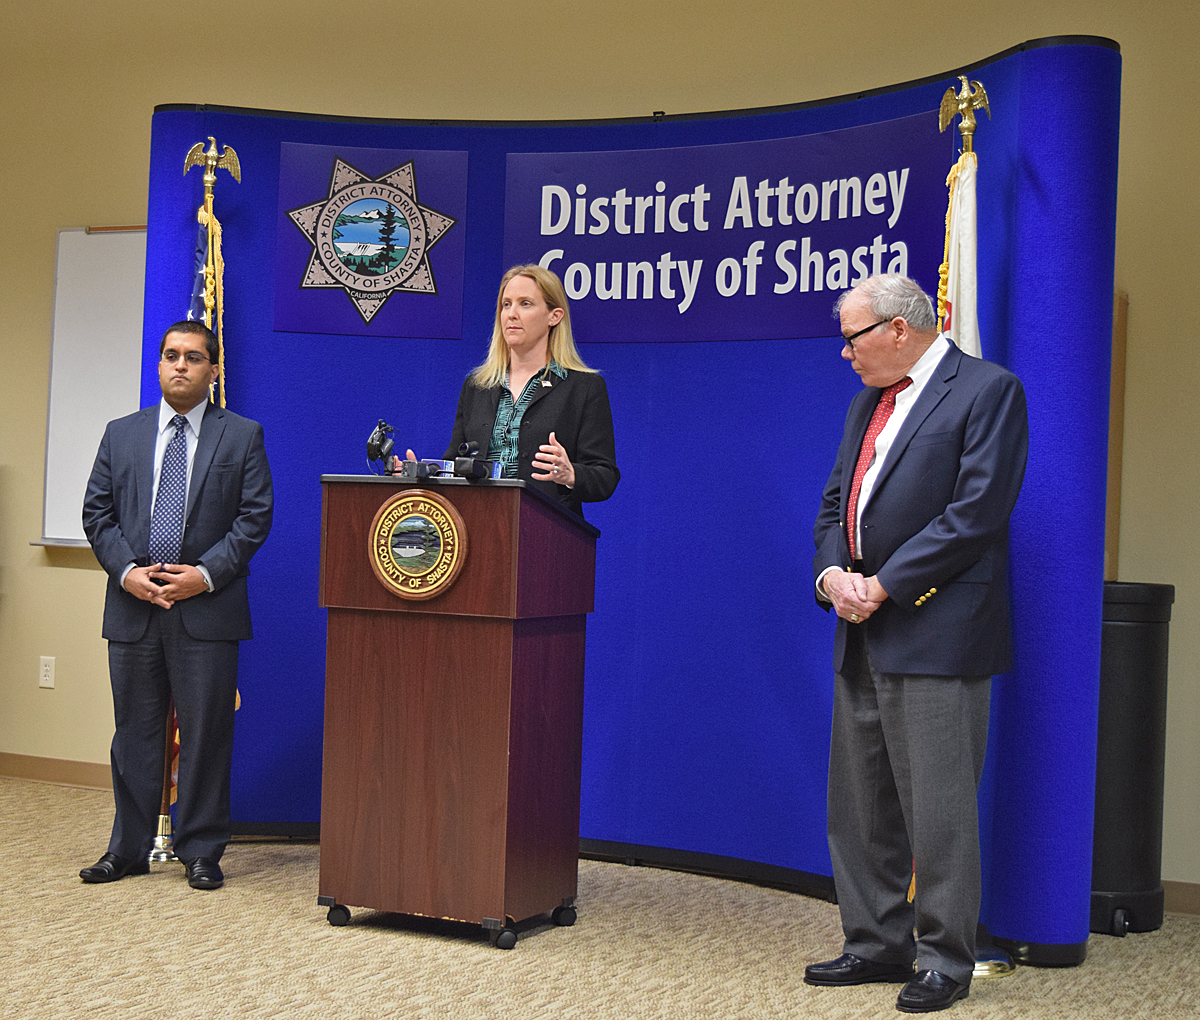 Redding Inn, District Attorney Reach Agreement On A Civil